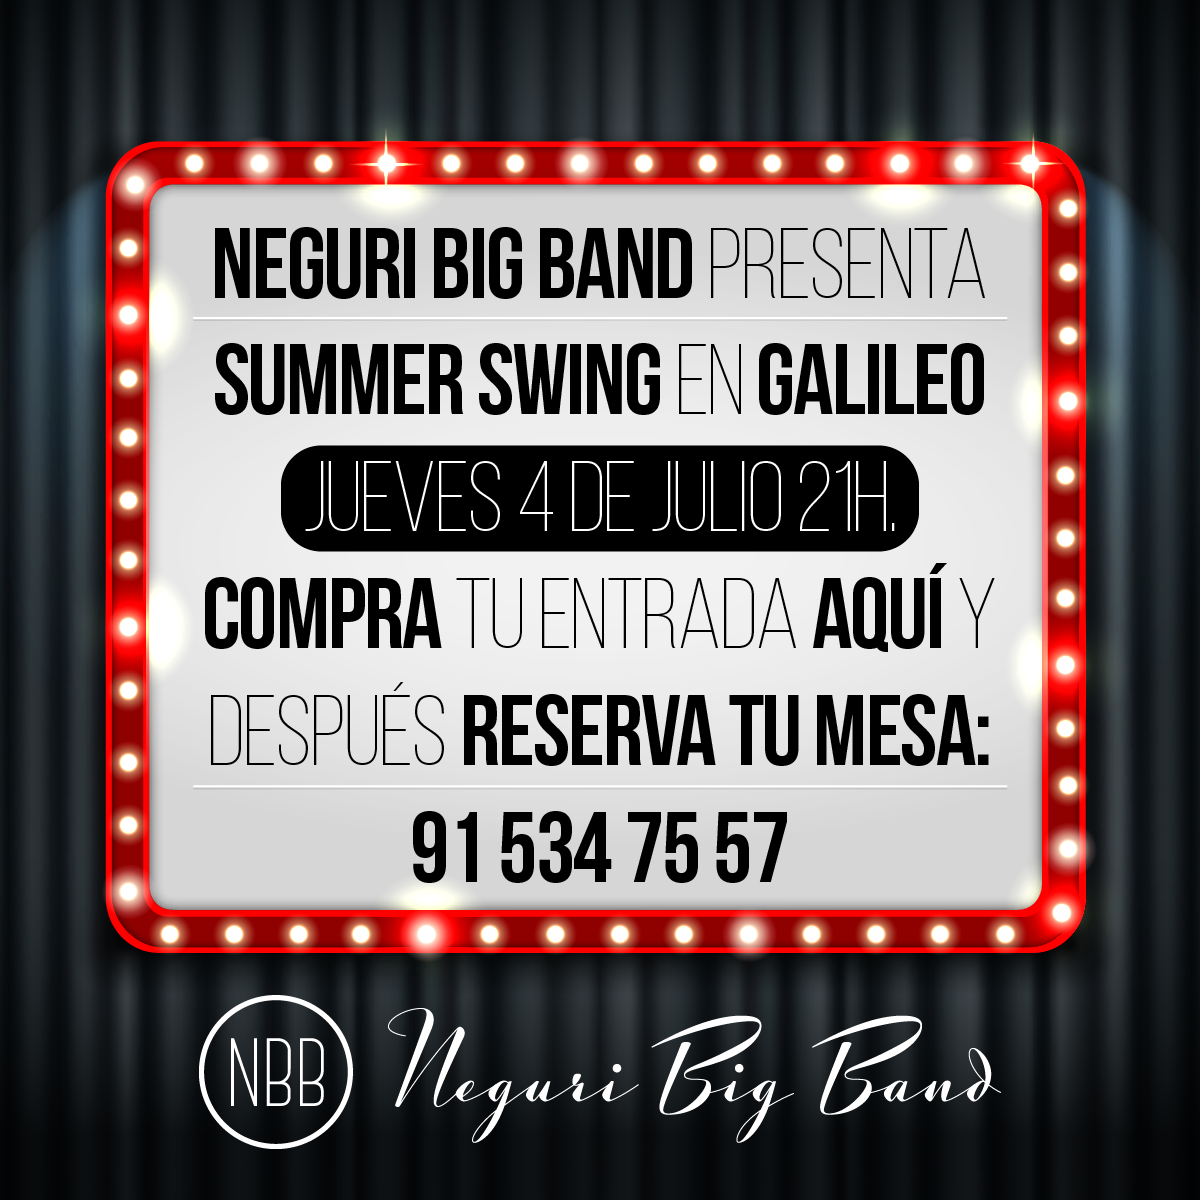 concierto-neguri-big-band-sala-galileo